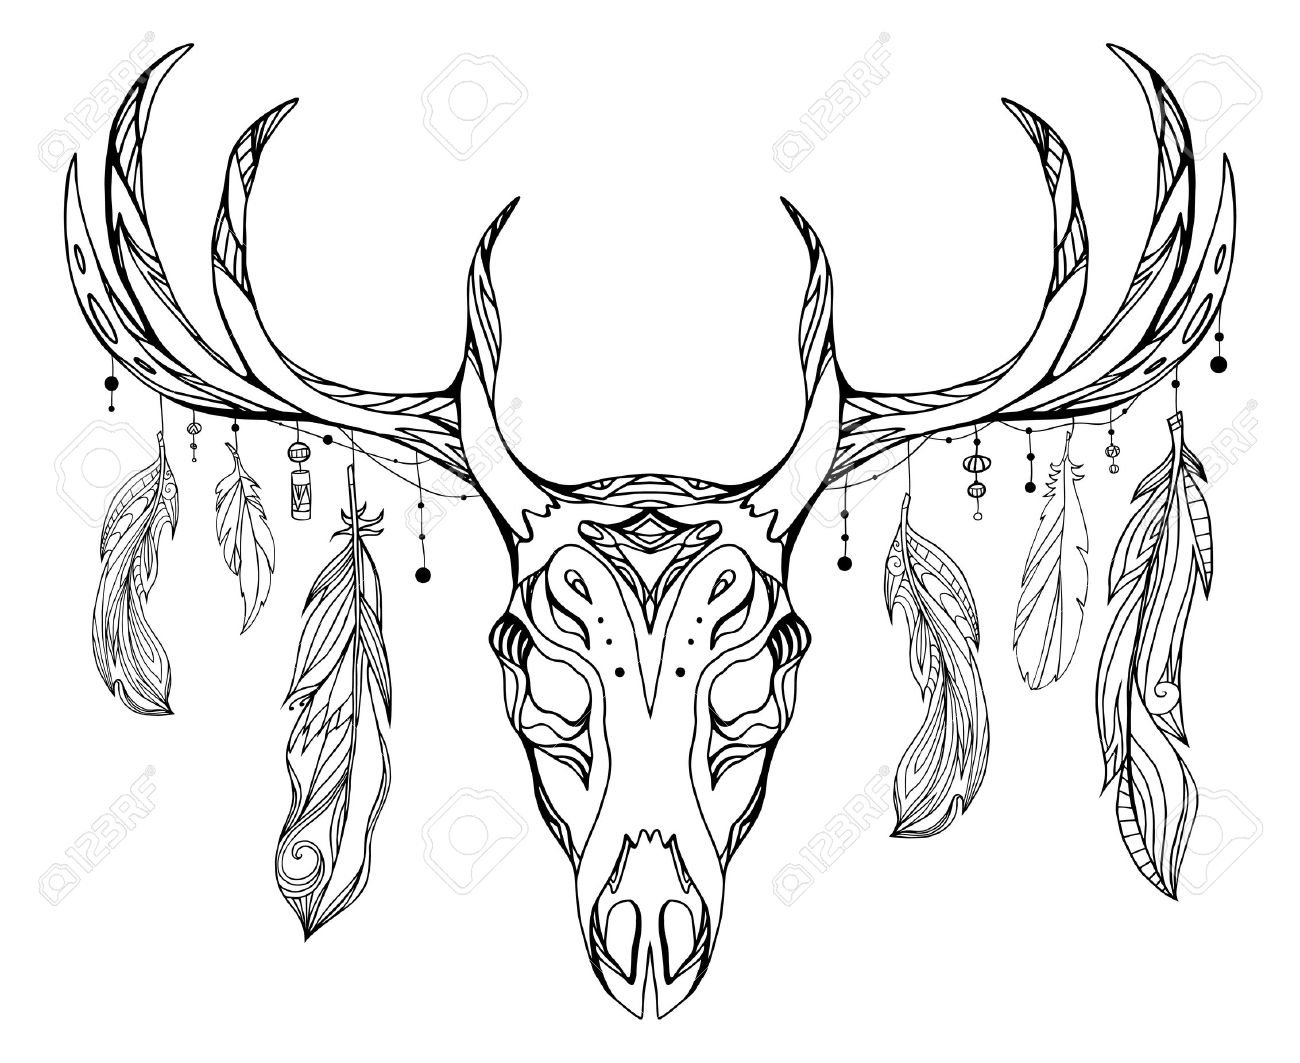 Deer Head Line Drawing at GetDrawings.com | Free for personal use ...